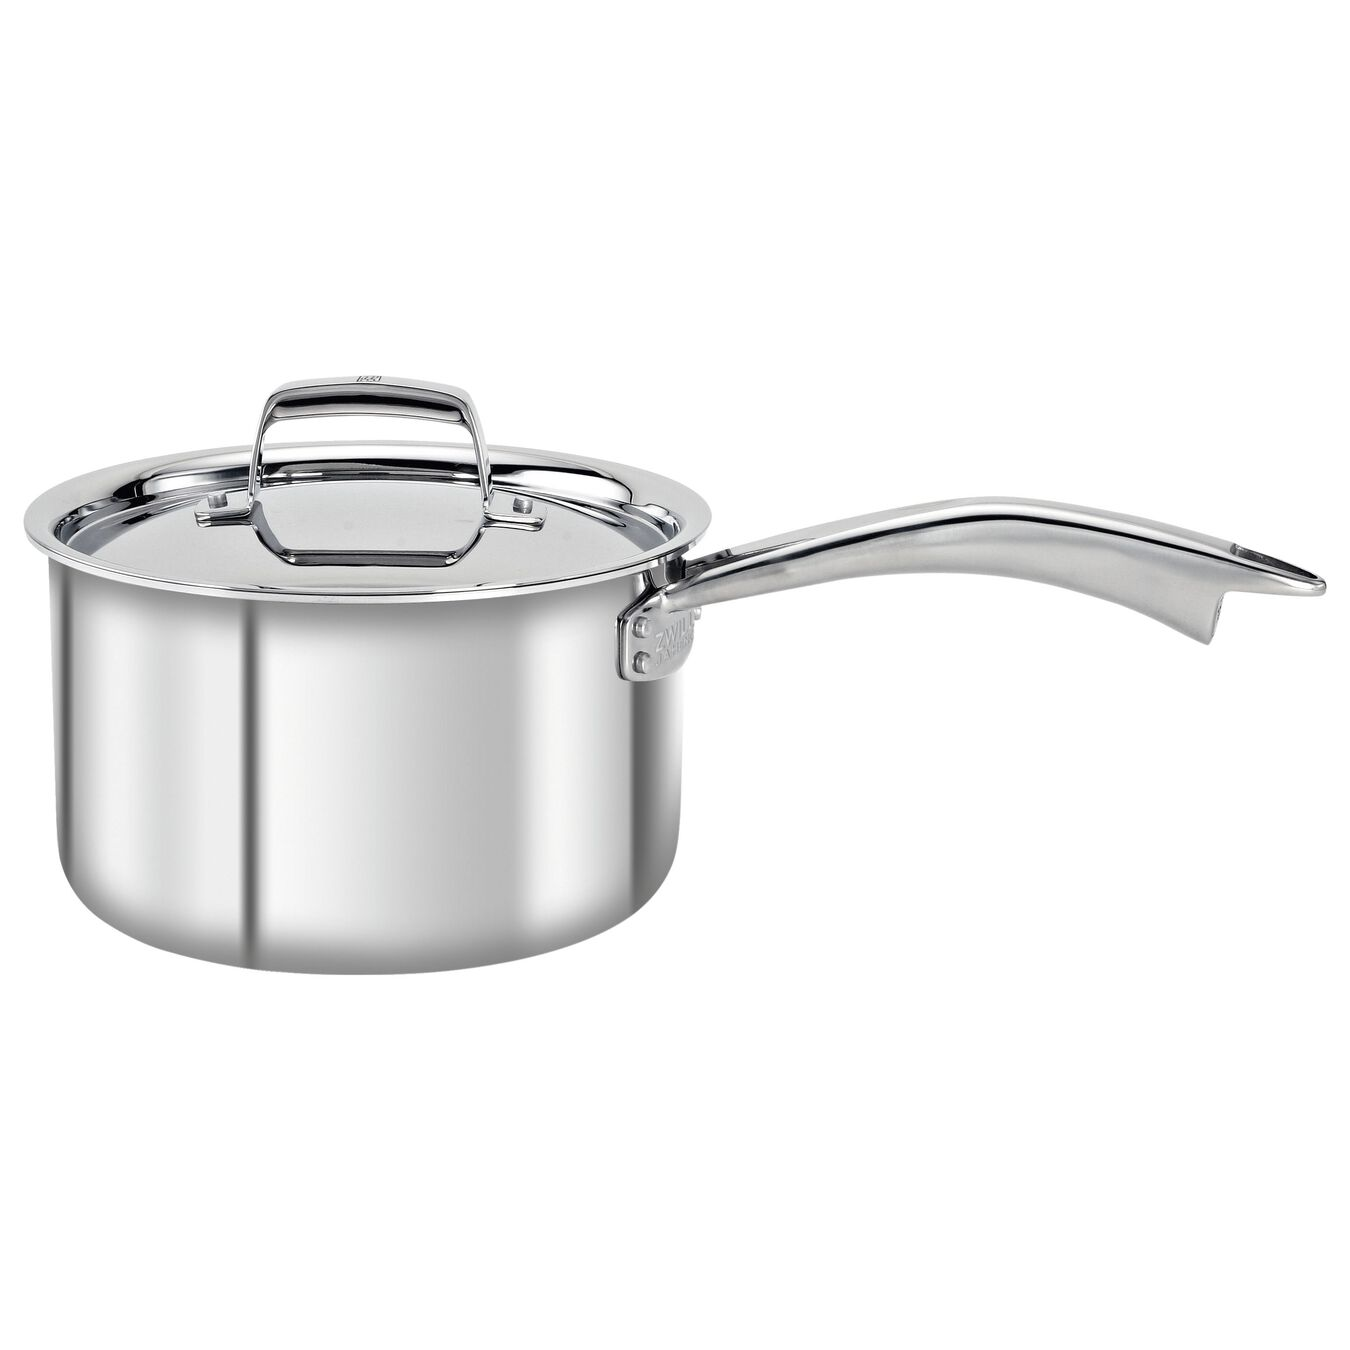 3.75 l 18/10 Stainless Steel Sauce Pan With Lid,,large 1